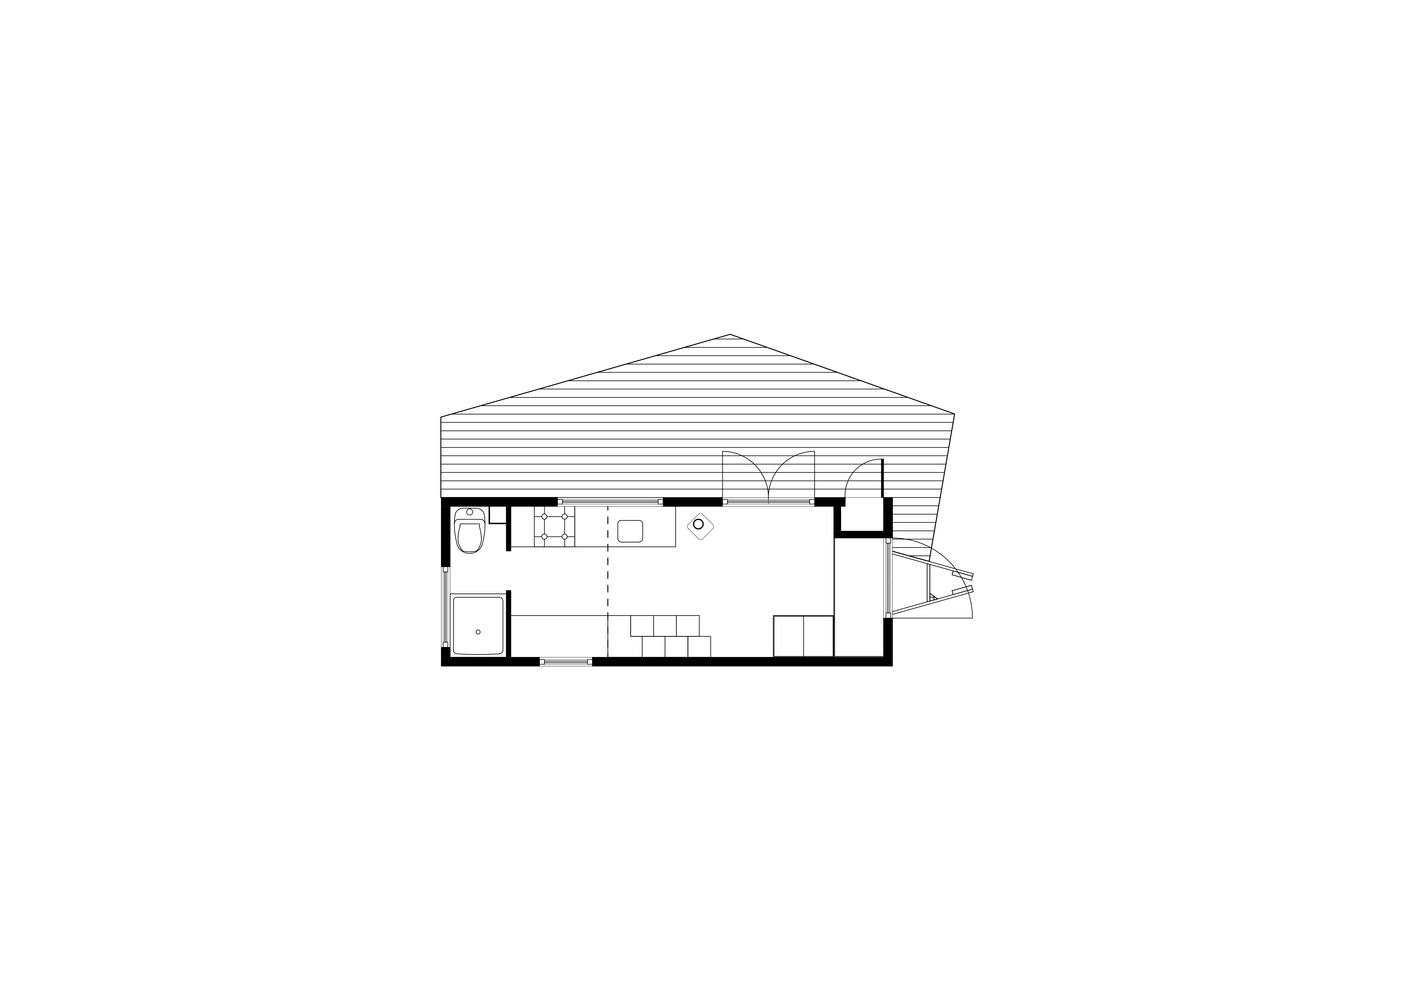 Gallery of Contemporary Tiny House / Walden Studio - 25 on small studio house plans, tiny guest cottage plans, tiny studio bathroom, tiny studio decorating, small space house plans, craft house plans, tiny chalet plans, passive solar house plans, tiny studio foundation,